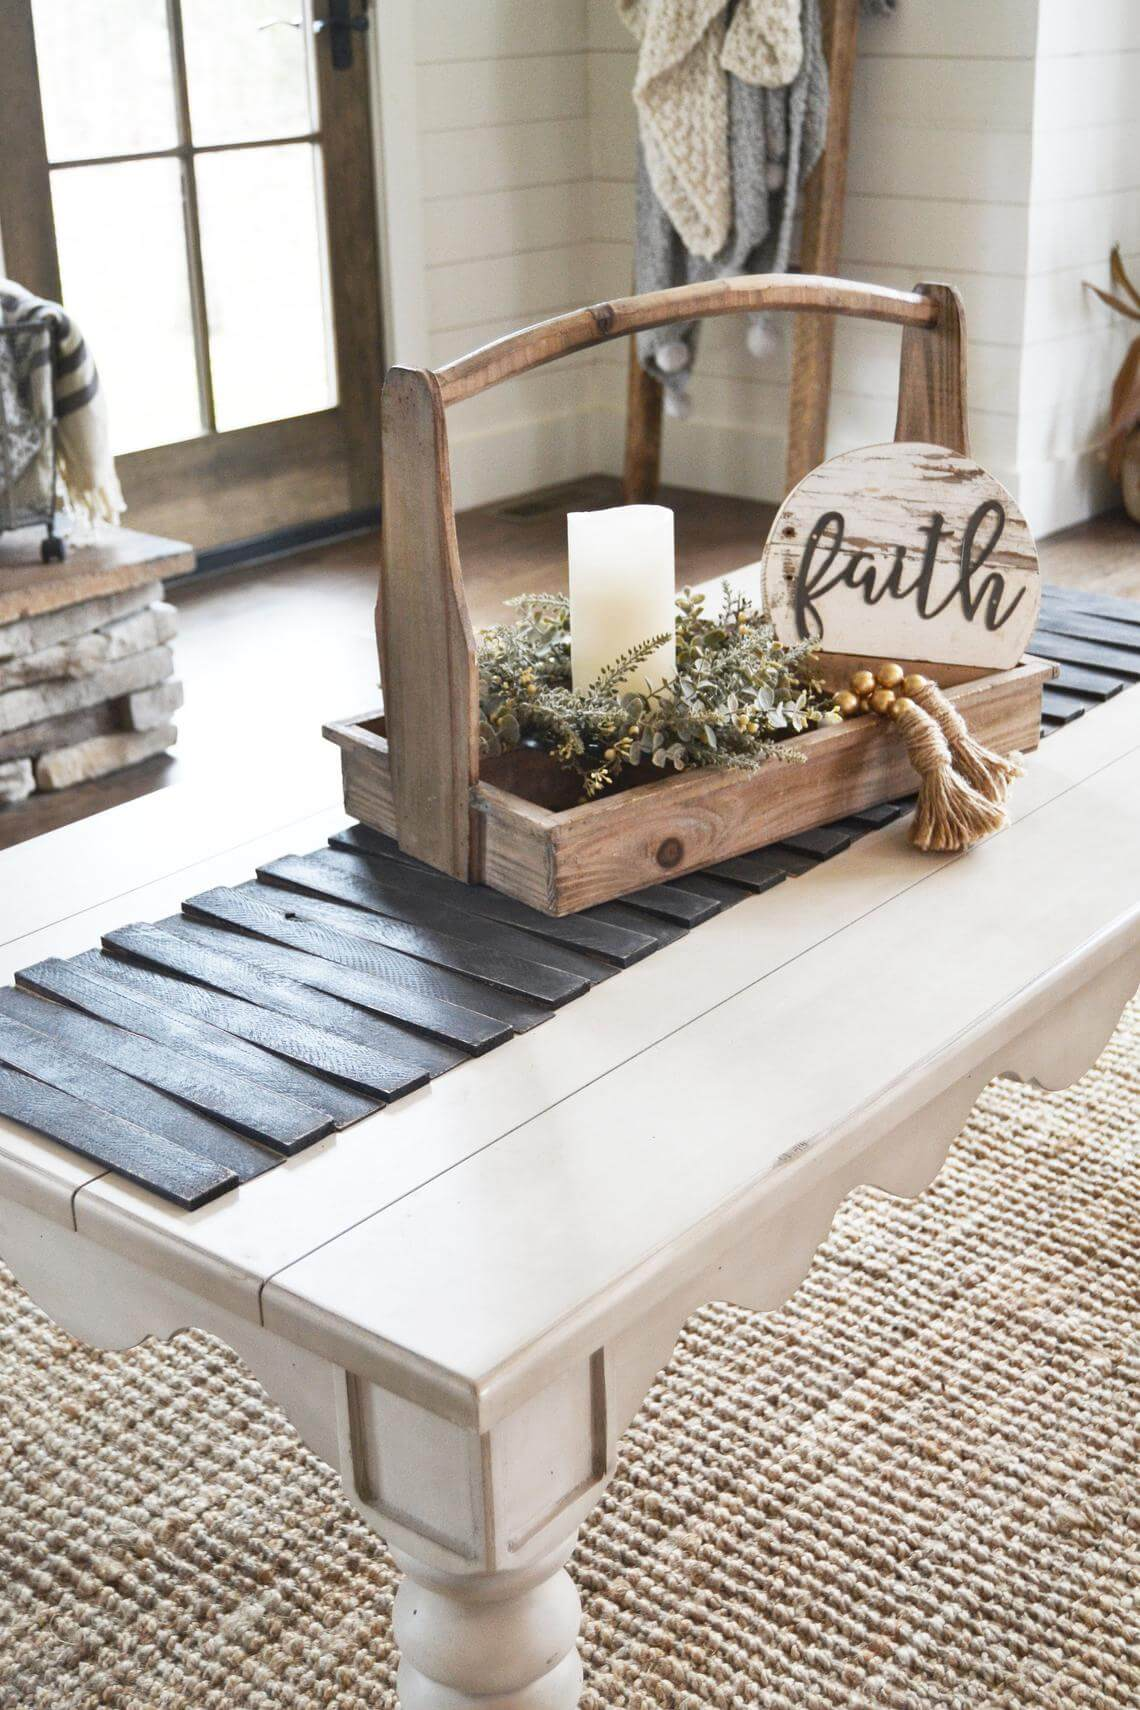 Shallow Wooden Tool Caddy Centerpiece Display